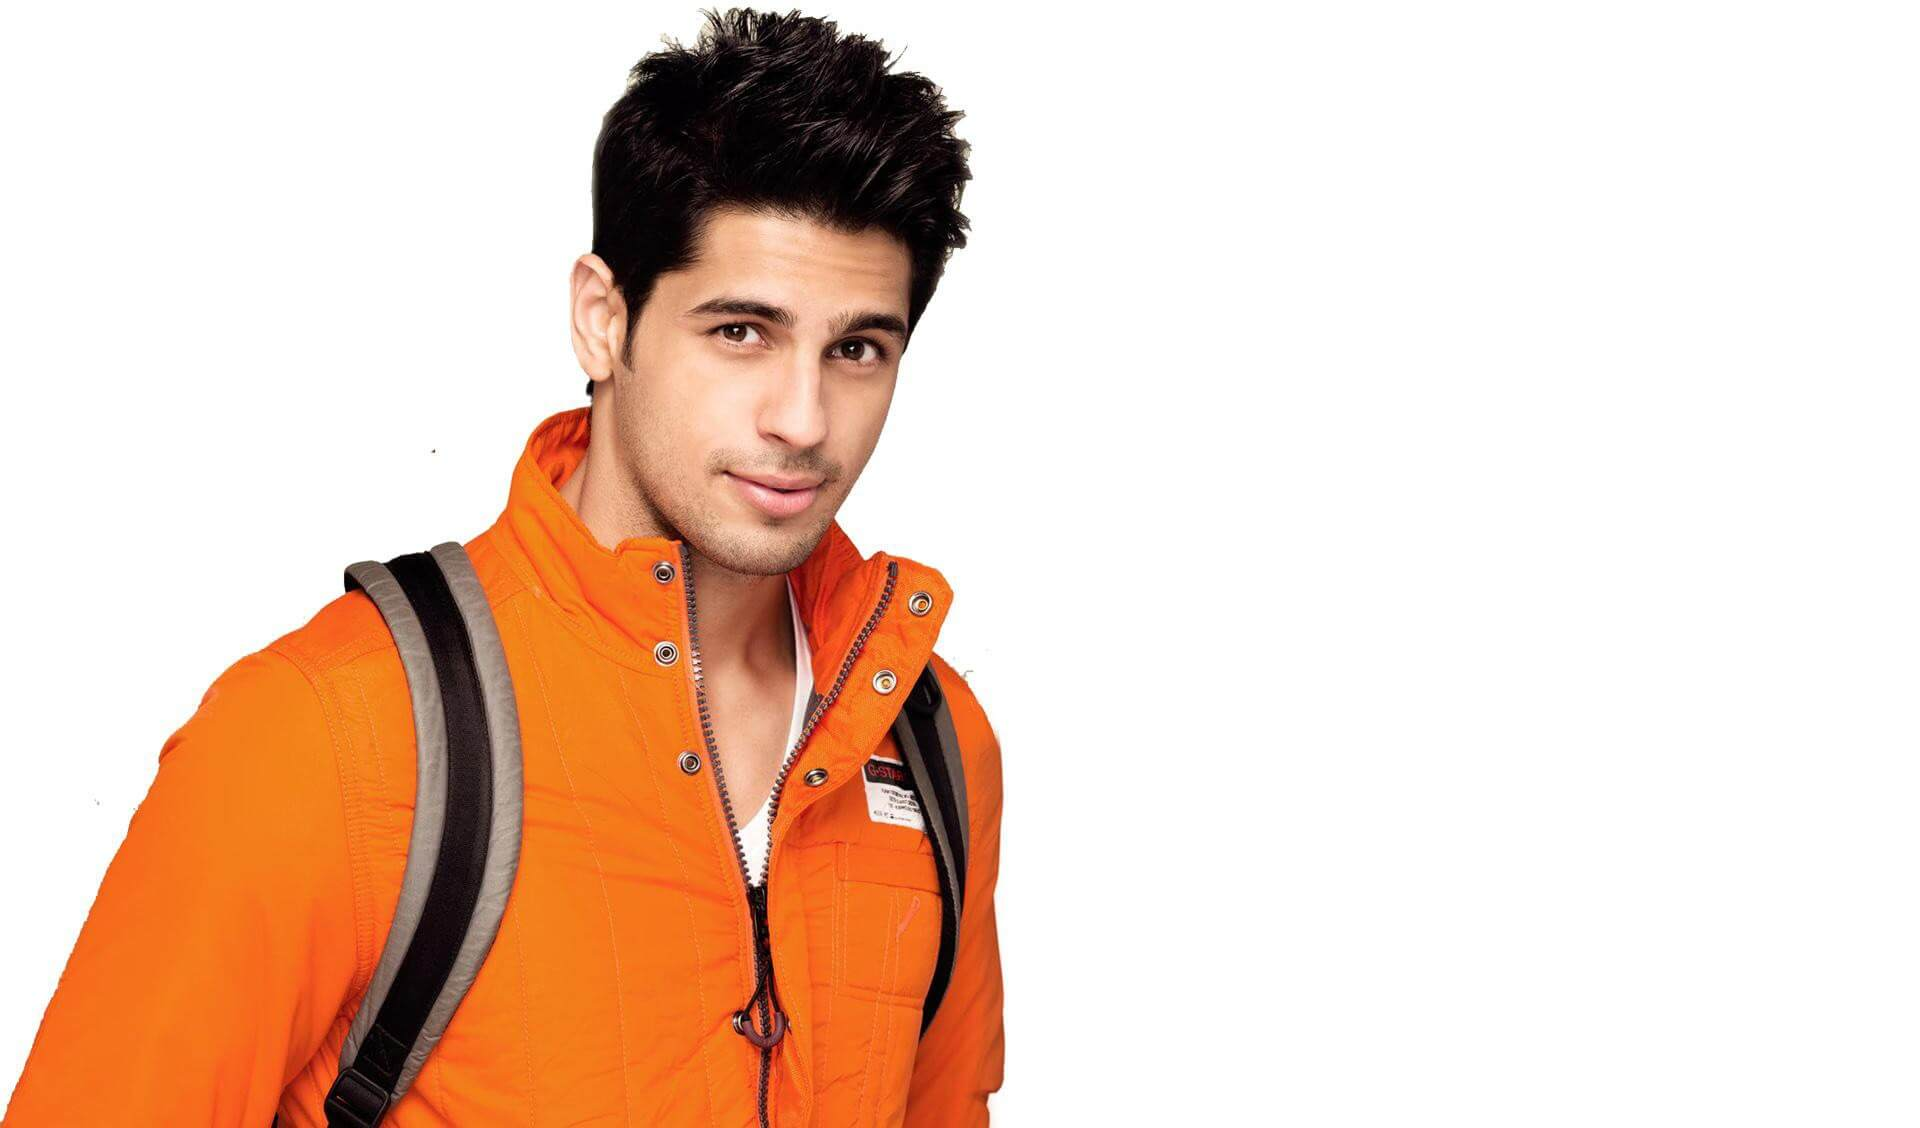 Sidharth Malhotra Movies, Height, Age, Photos, Birth Date, Biography, Girlfriend, Family, Hairstyle, Education, Details, Net Worth, Awards, Wiki, Instagram, Facebook, Imdb, Twitter (65)